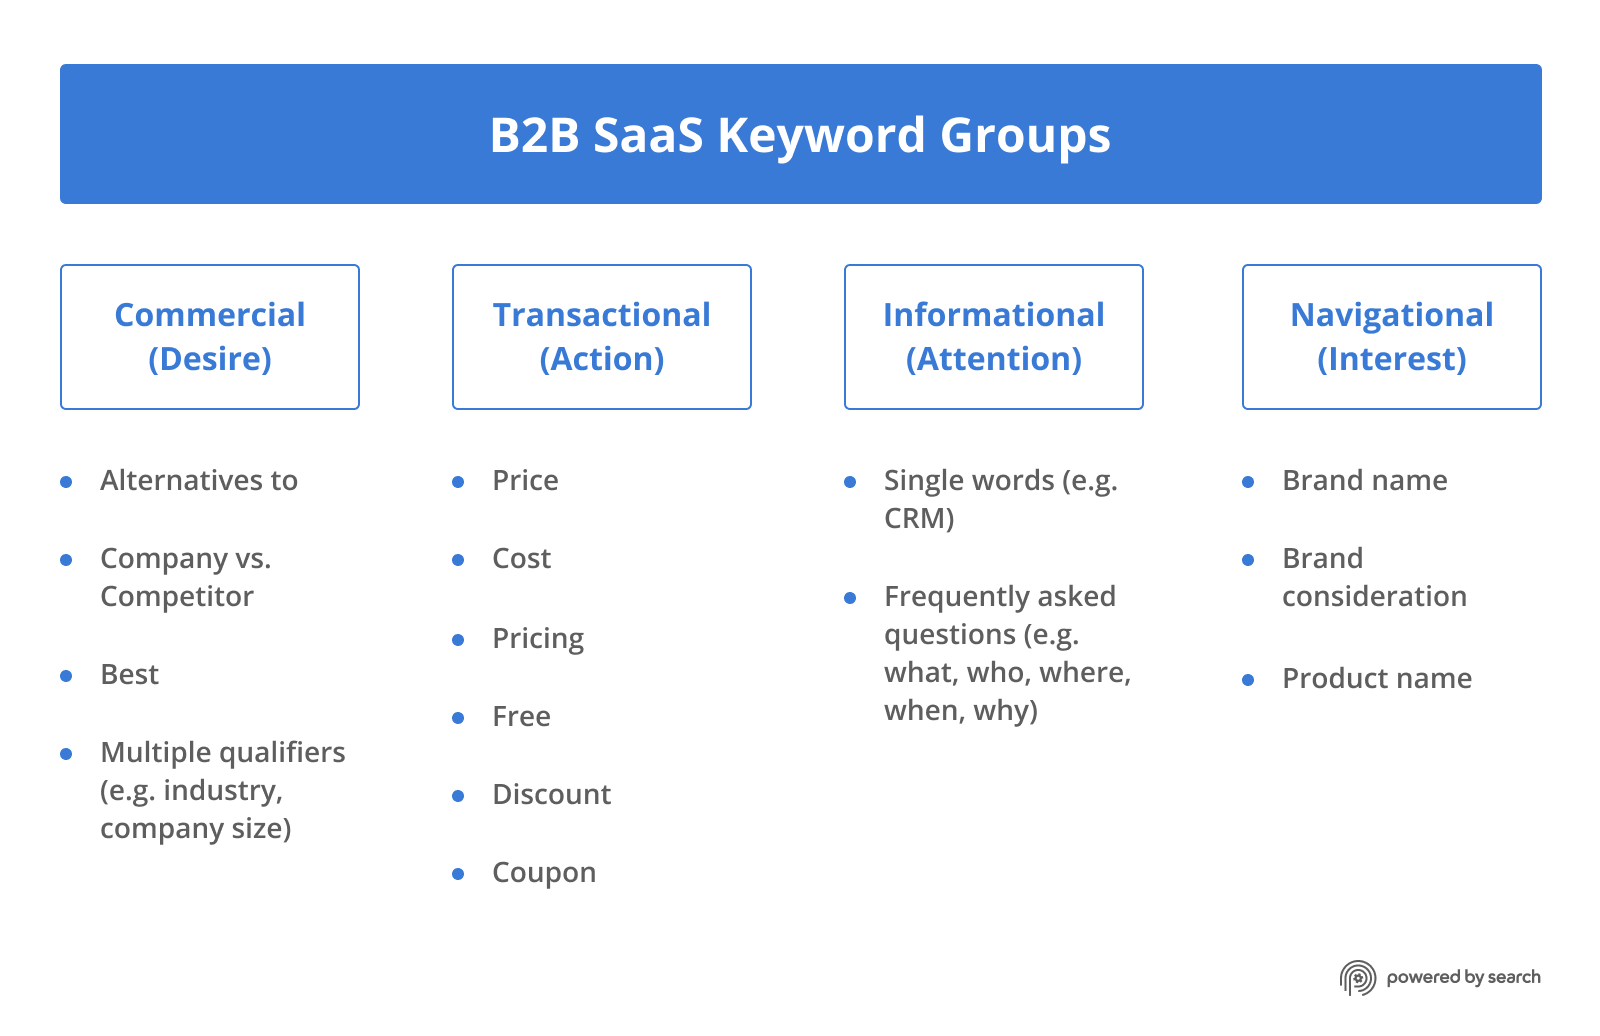 B2B SaaS Keyword Groups: Commercial, Transactional, Informational, Navigational